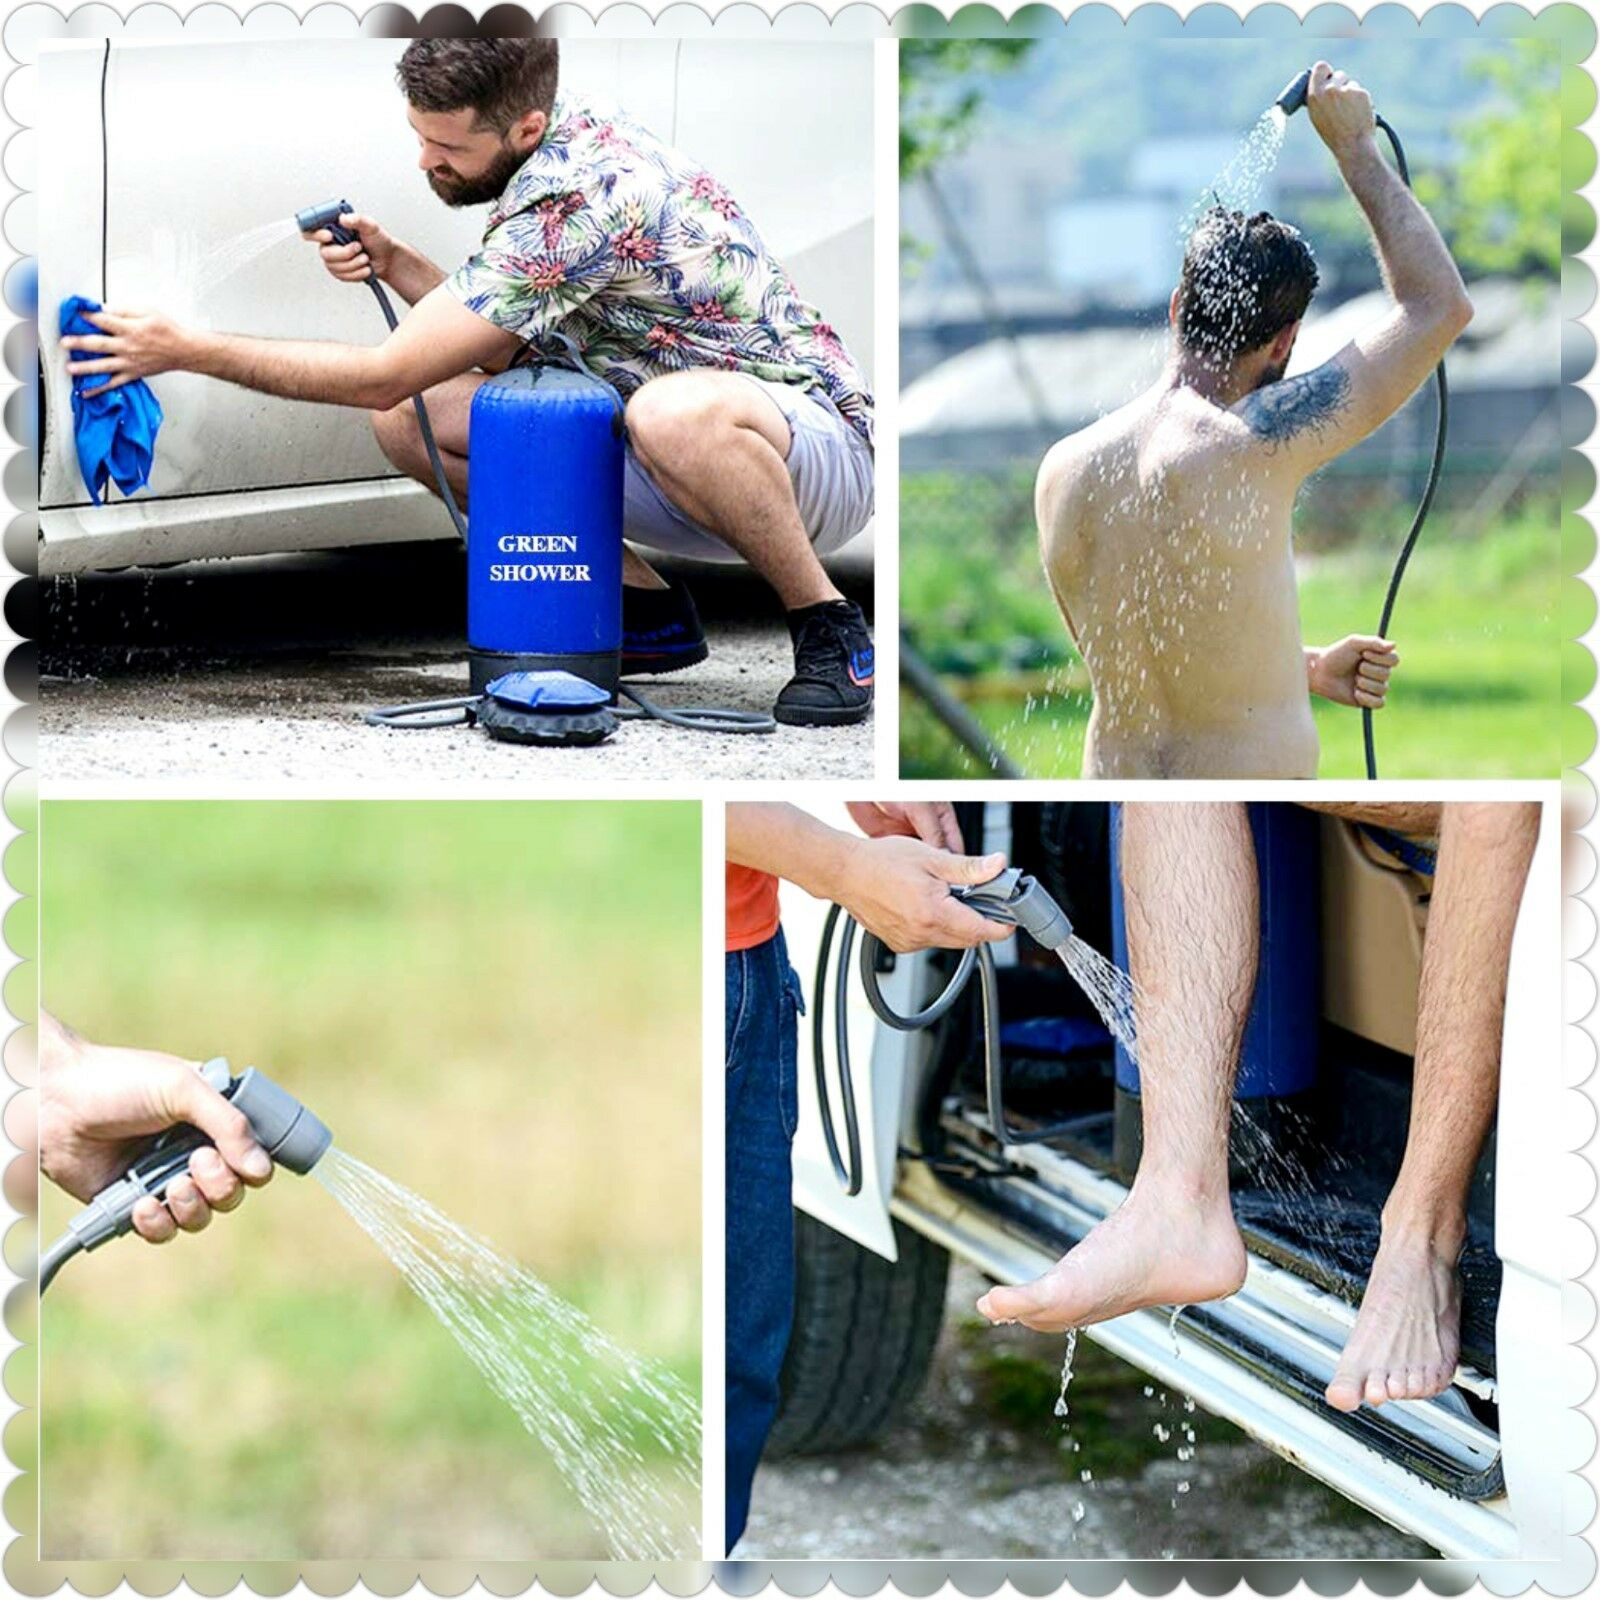 HW PORTABLE OUTDOOR SHOWER BAG WITH FOOT PUMP & SHOWER  NOZZLE FOR CAMPING HIKING  10 days return